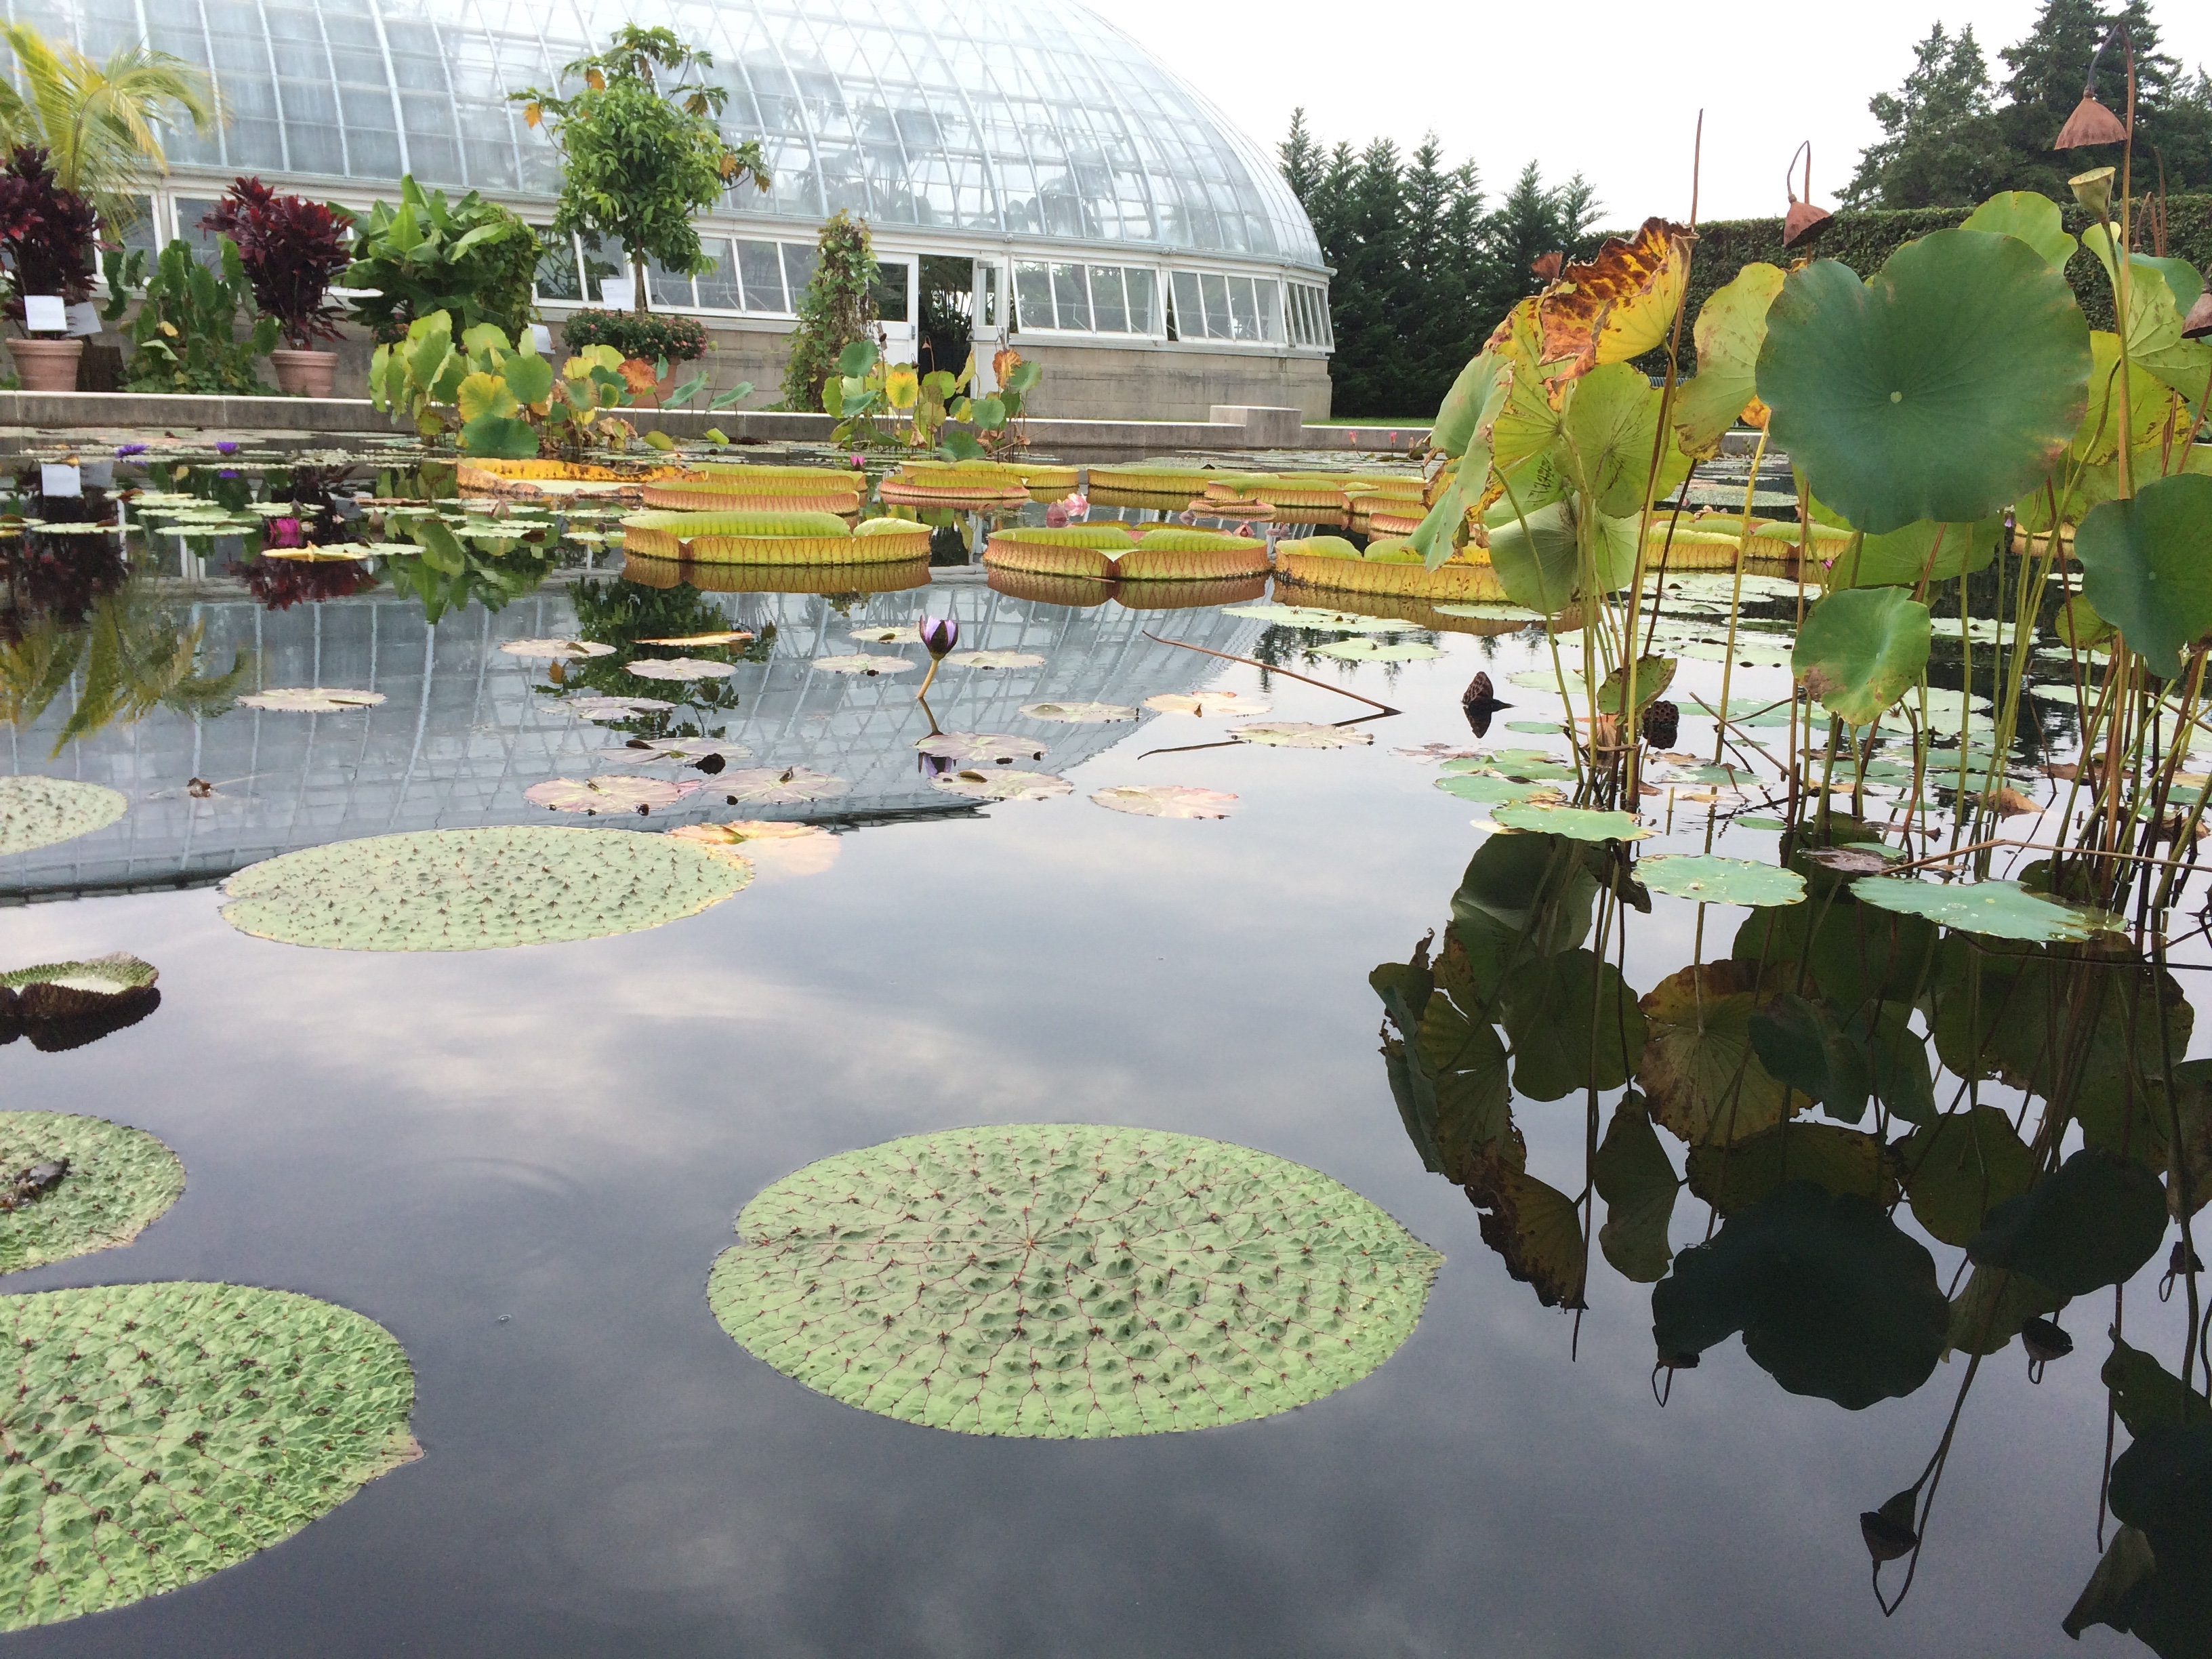 Photo of small water lily pads in foreground, large lily pads in mid-ground, and a large glasshouse in the background.